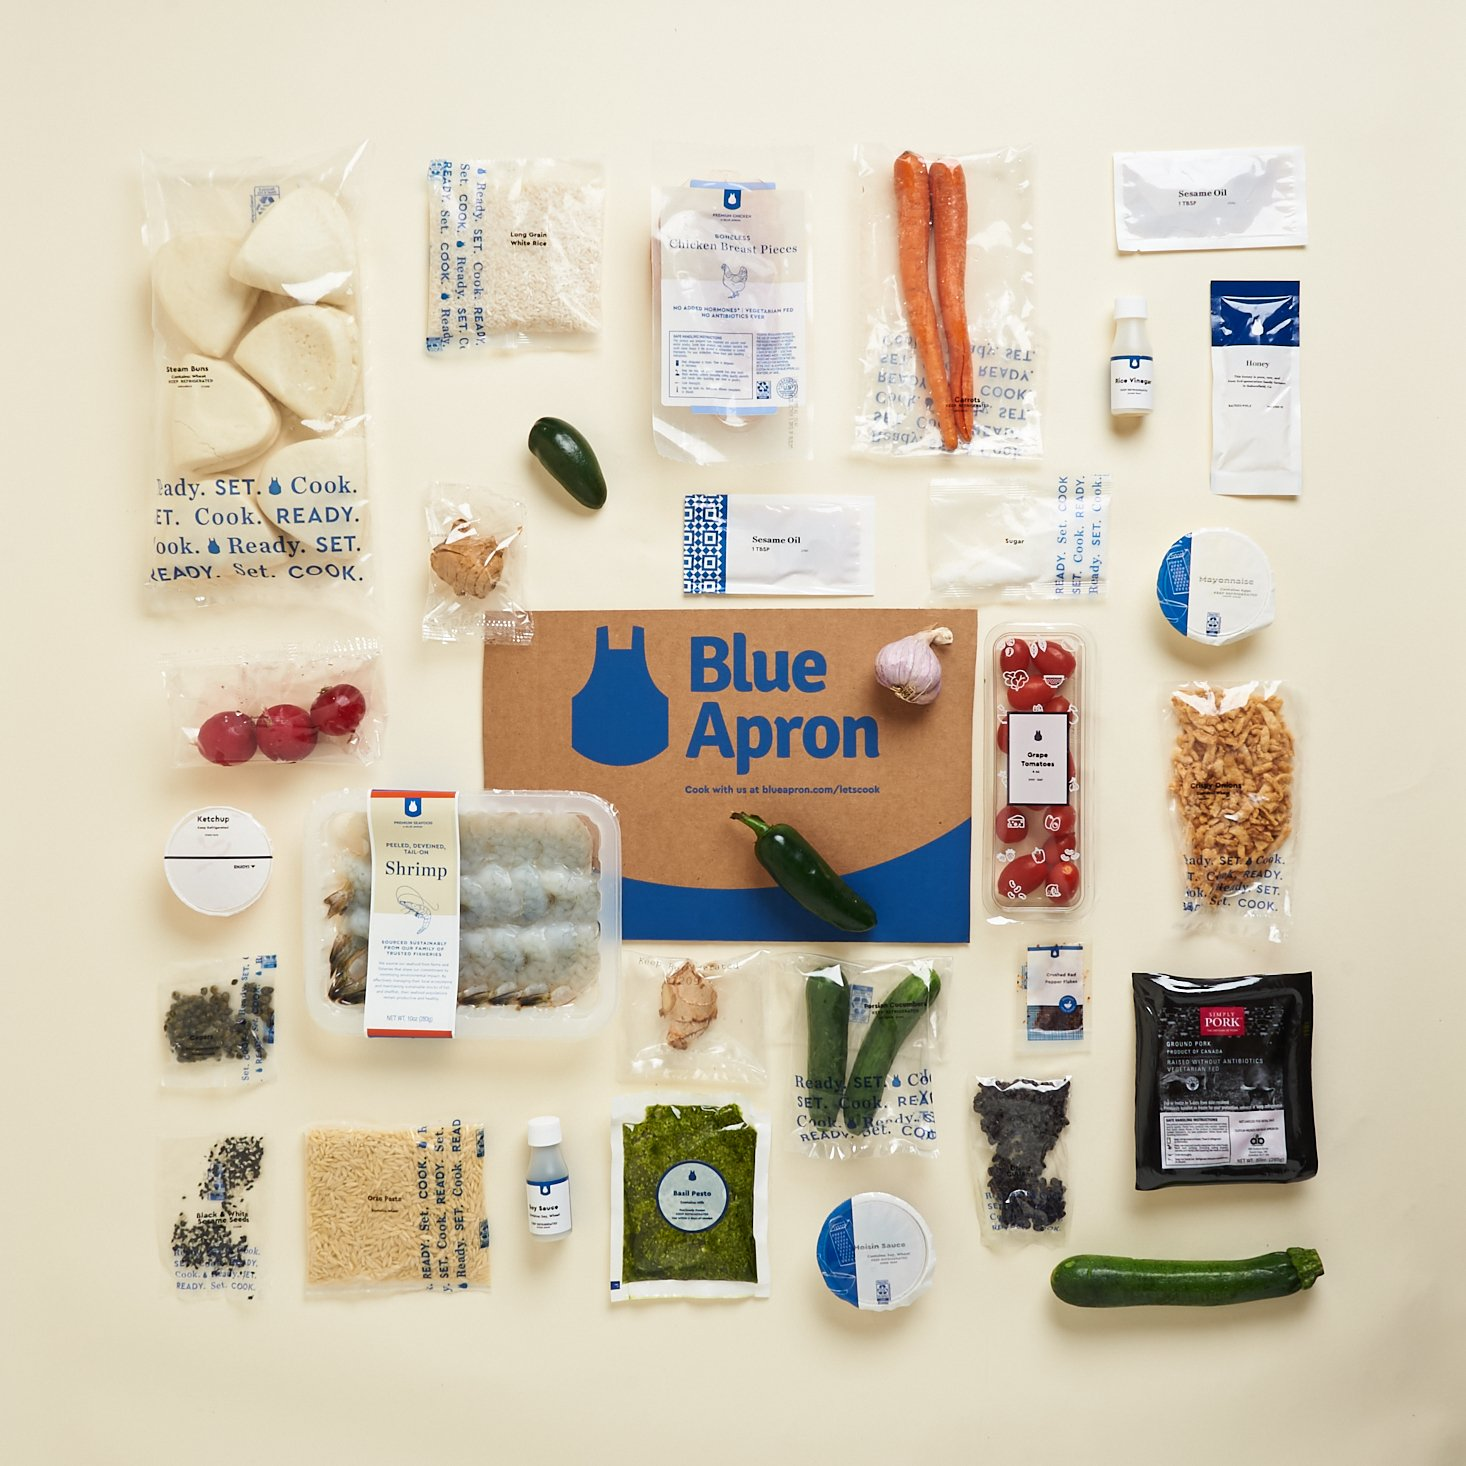 Blue Apron Flash Sale: Save on a New Subscription for a Limited Time